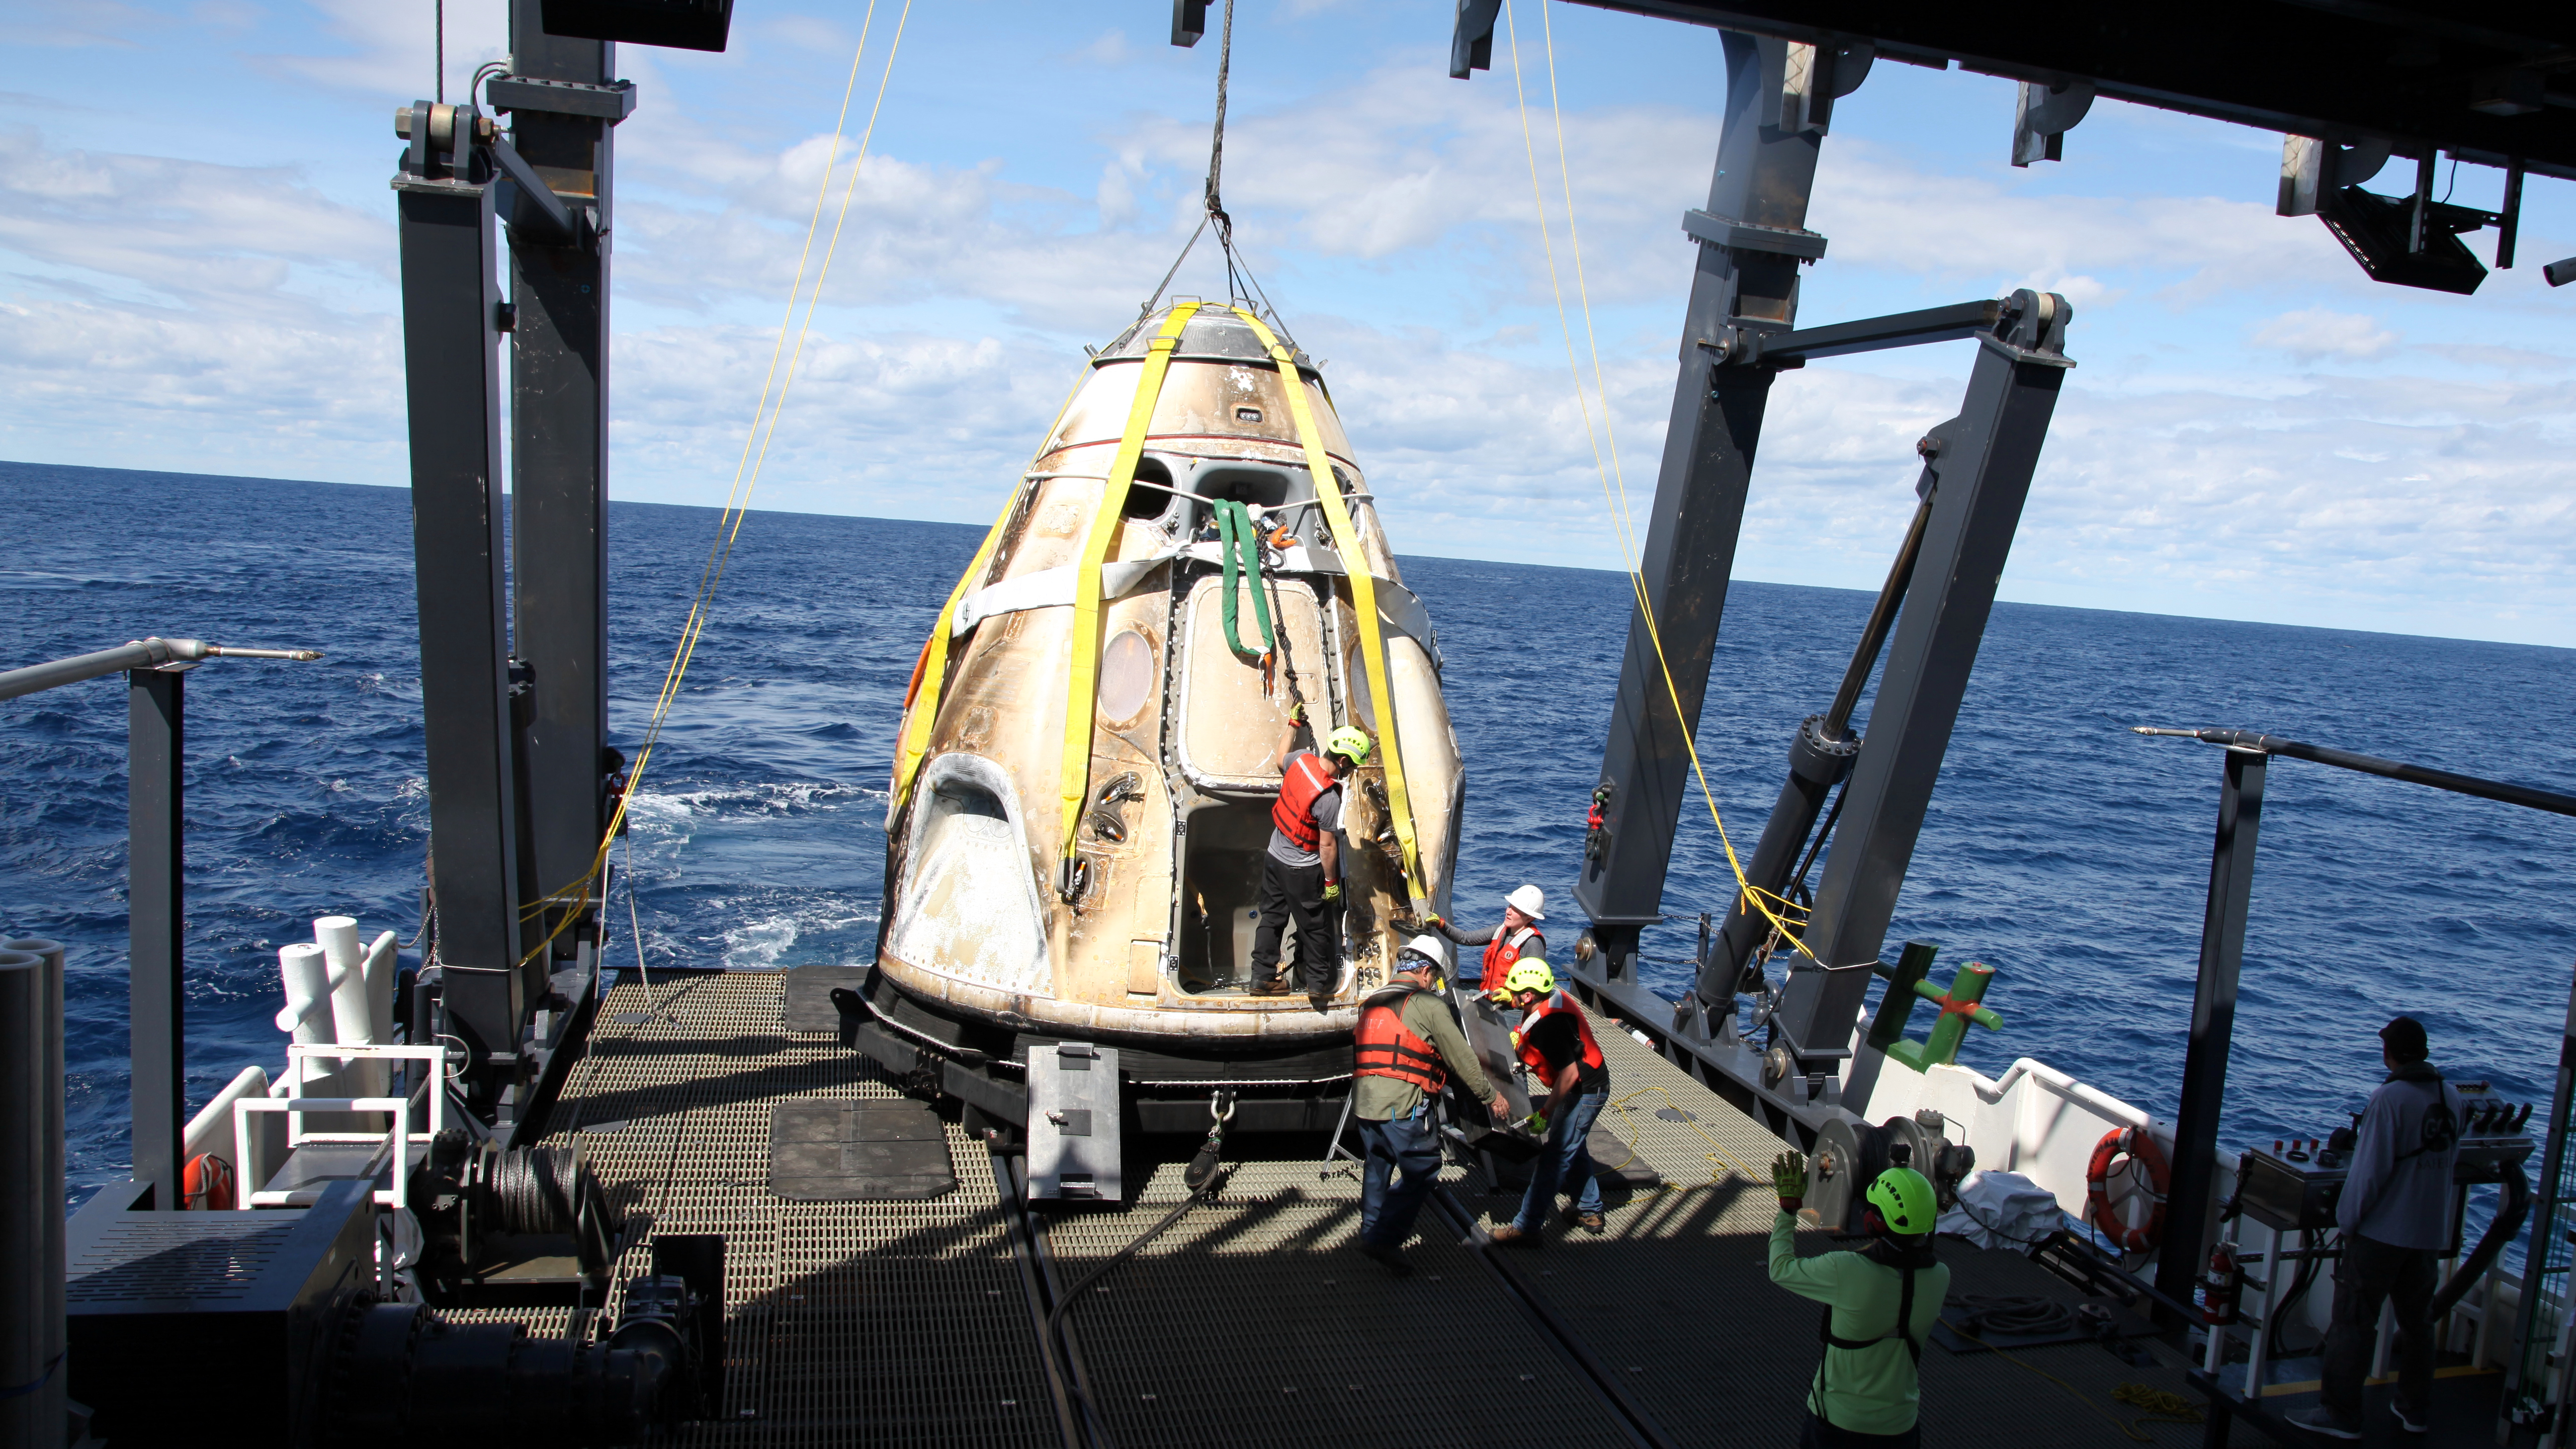 SpaceX's Crew Dragon is loaded onto the company's recovery ship, Go Searcher, in the Atlantic Ocean, about 200 miles off Florida's east coast, on March 8, after returning from the International Space Station on the Demo-1 mission. The uncrewed spacecraft docked to the orbiting laboratory on March 3, following a 2:49 a.m. EST liftoff aboard a SpaceX Falcon 9 rocket from Launch Complex 39A at NASA's Kennedy Space Center in Florida on March 2. The spacecraft undocked at 2:32 a.m., March 8, splashing down in the Atlantic Ocean, at 8:45 a.m. SpaceX's inaugural flight with NASA's Commercial Crew Program is the first flight test of a space system designed for humans built and operated by a commercial company through a public-private partnership. NASA and SpaceX will use data from Demo-1 to further prepare for Demo-2, the crewed flight test that will carry NASA astronauts Bob Behnken and Doug Hurley to the International Space Station later this year.